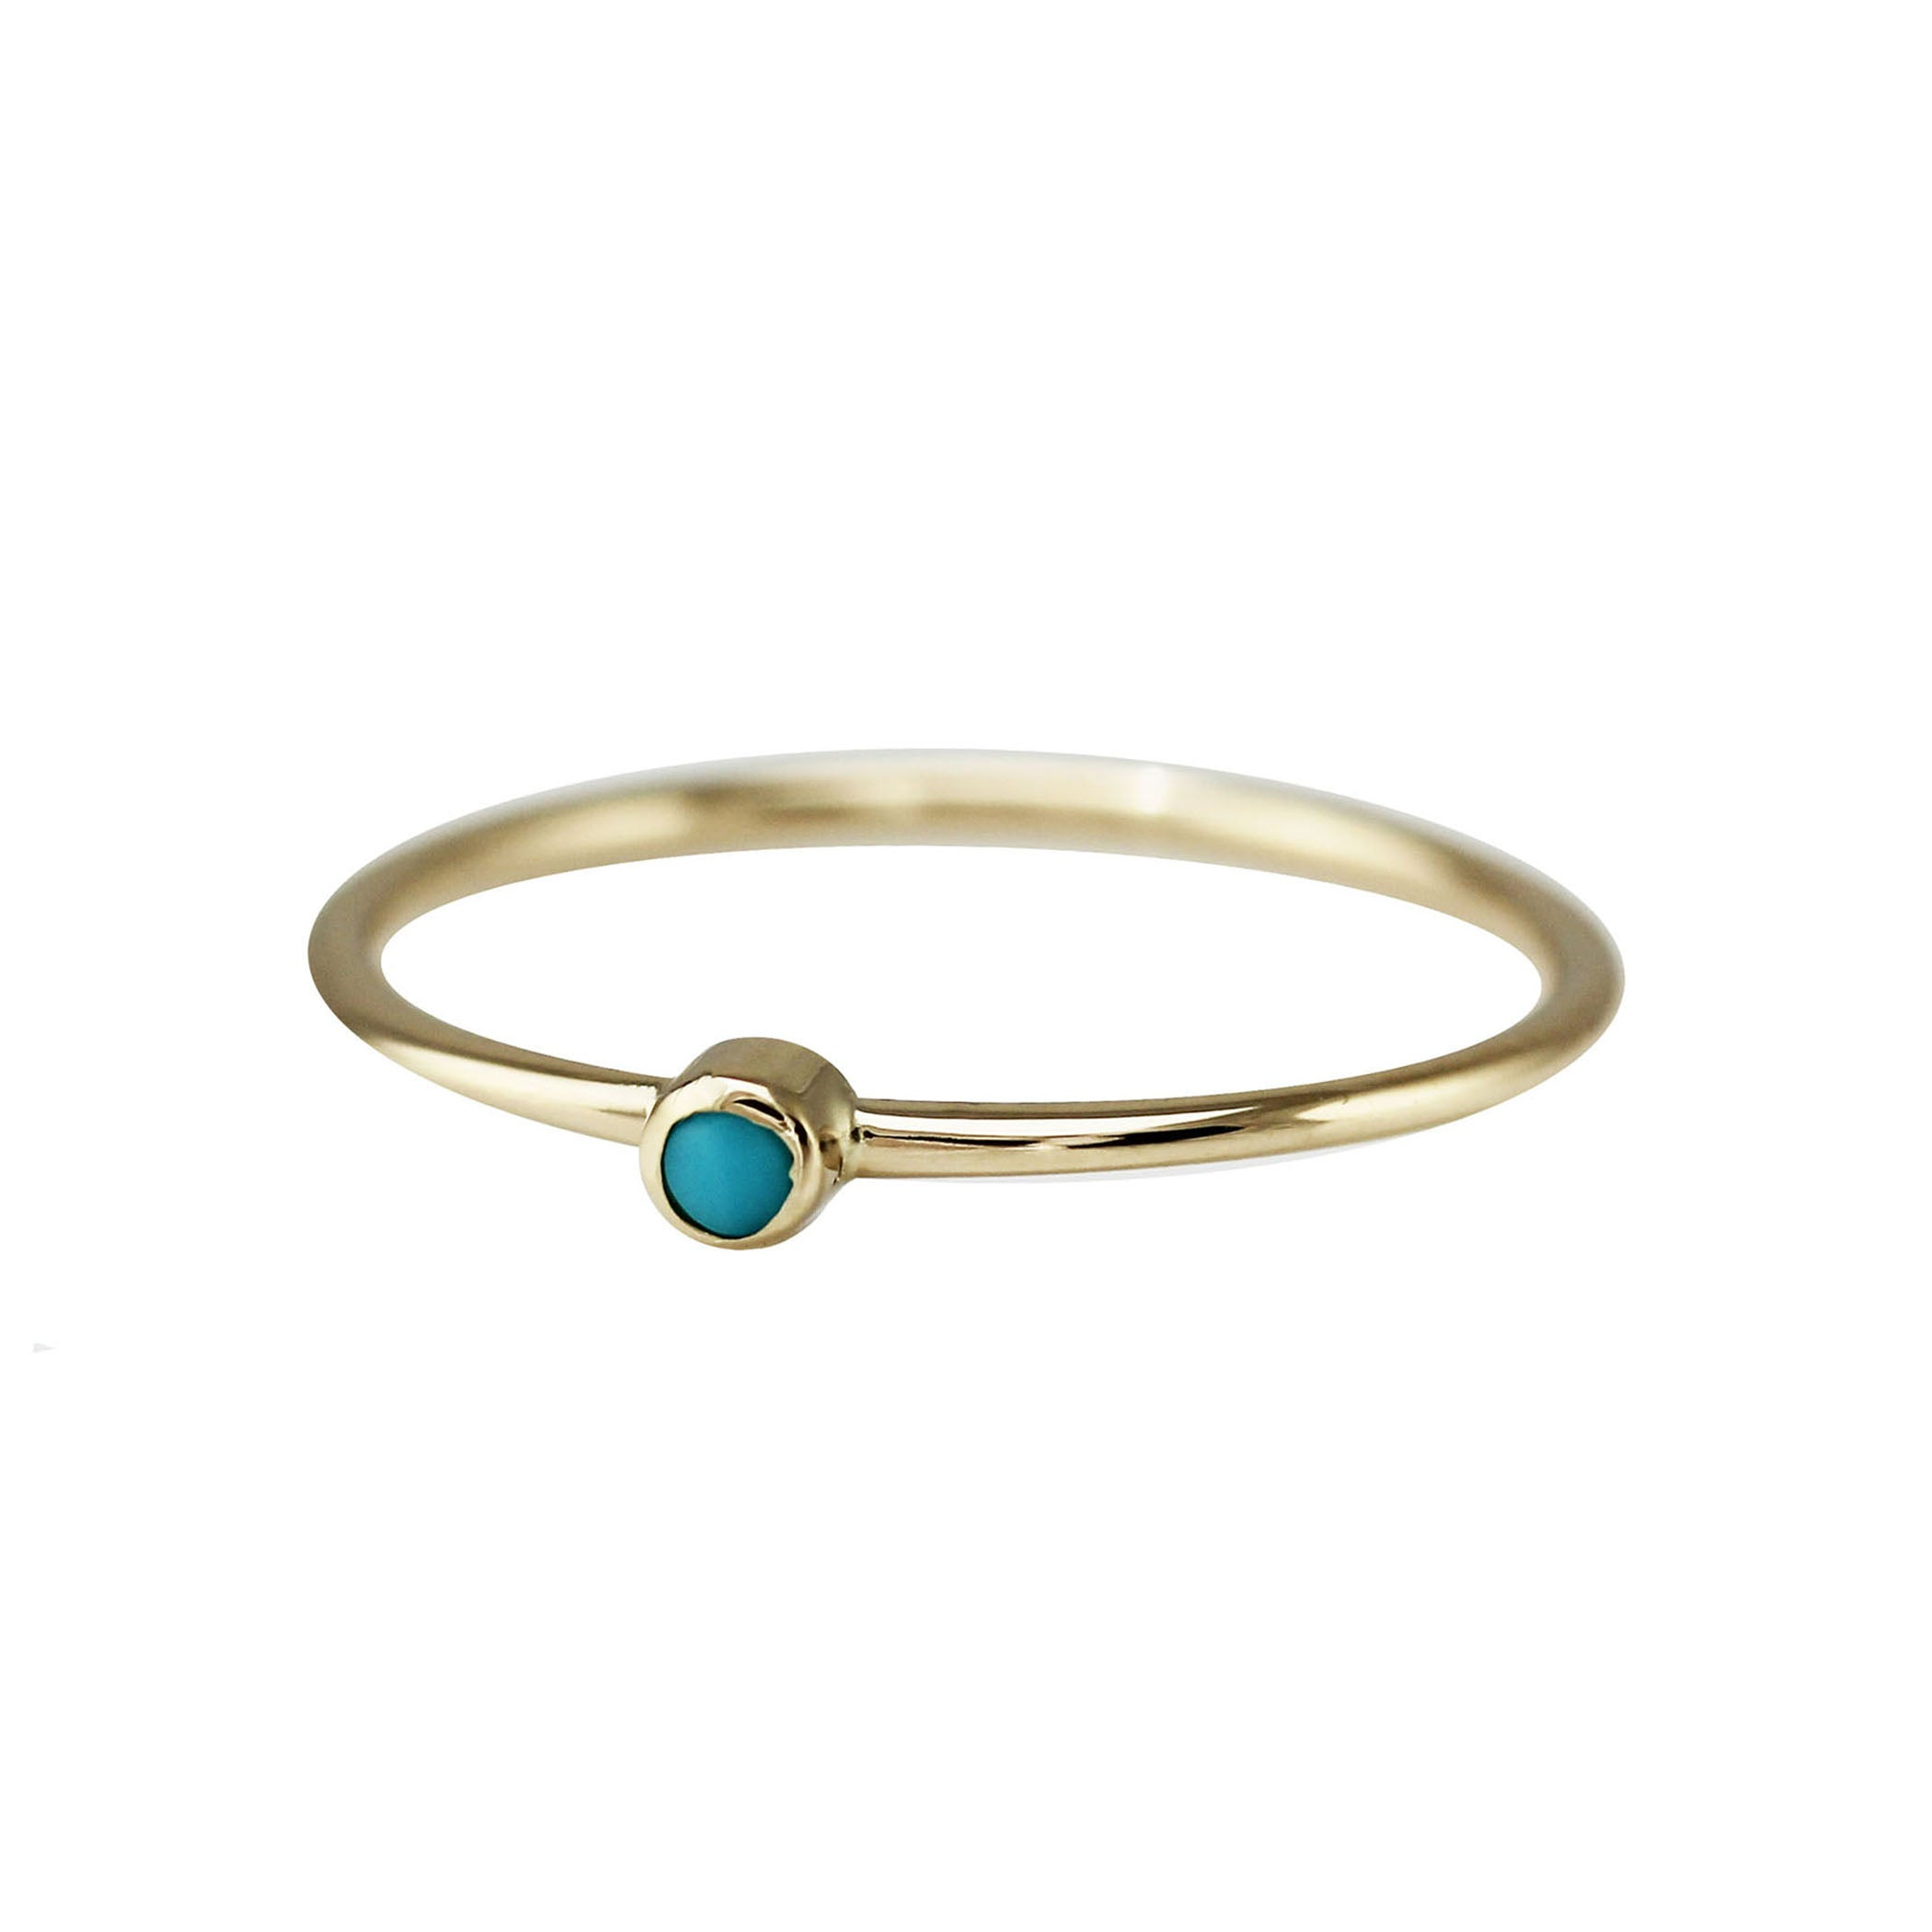 14K SINGLE TURQUOISE RING